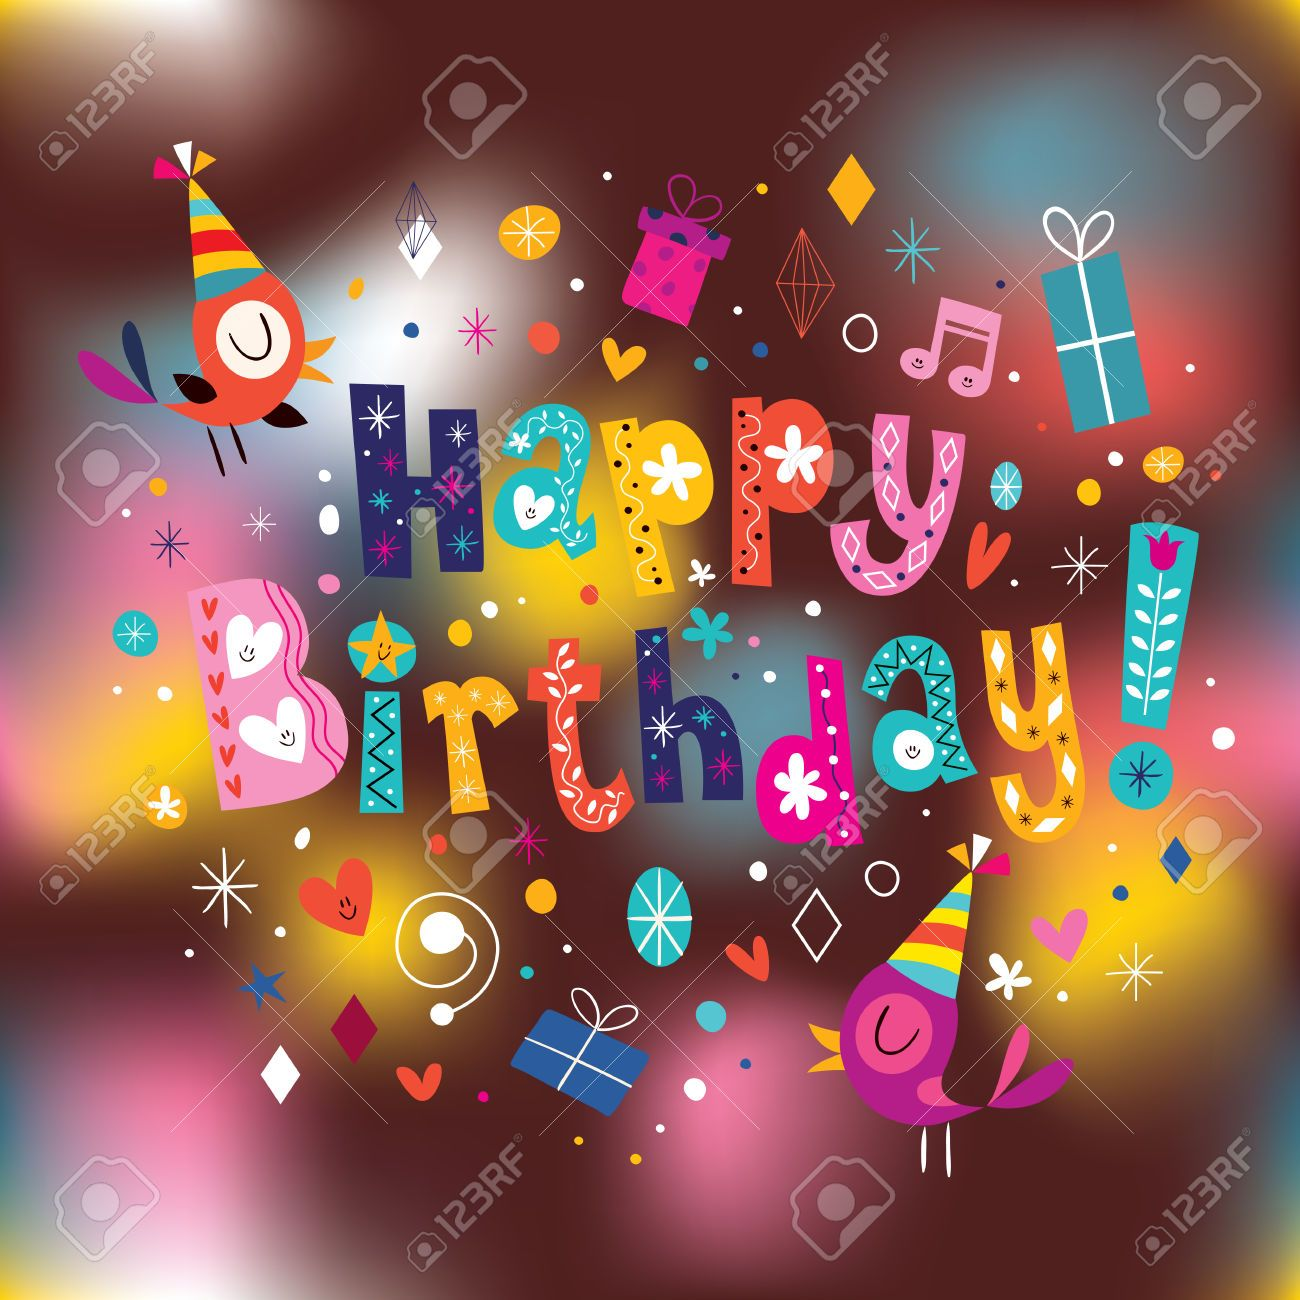 Happy birthday card with ornamental gift Free Vector – Images of Birthday Cards